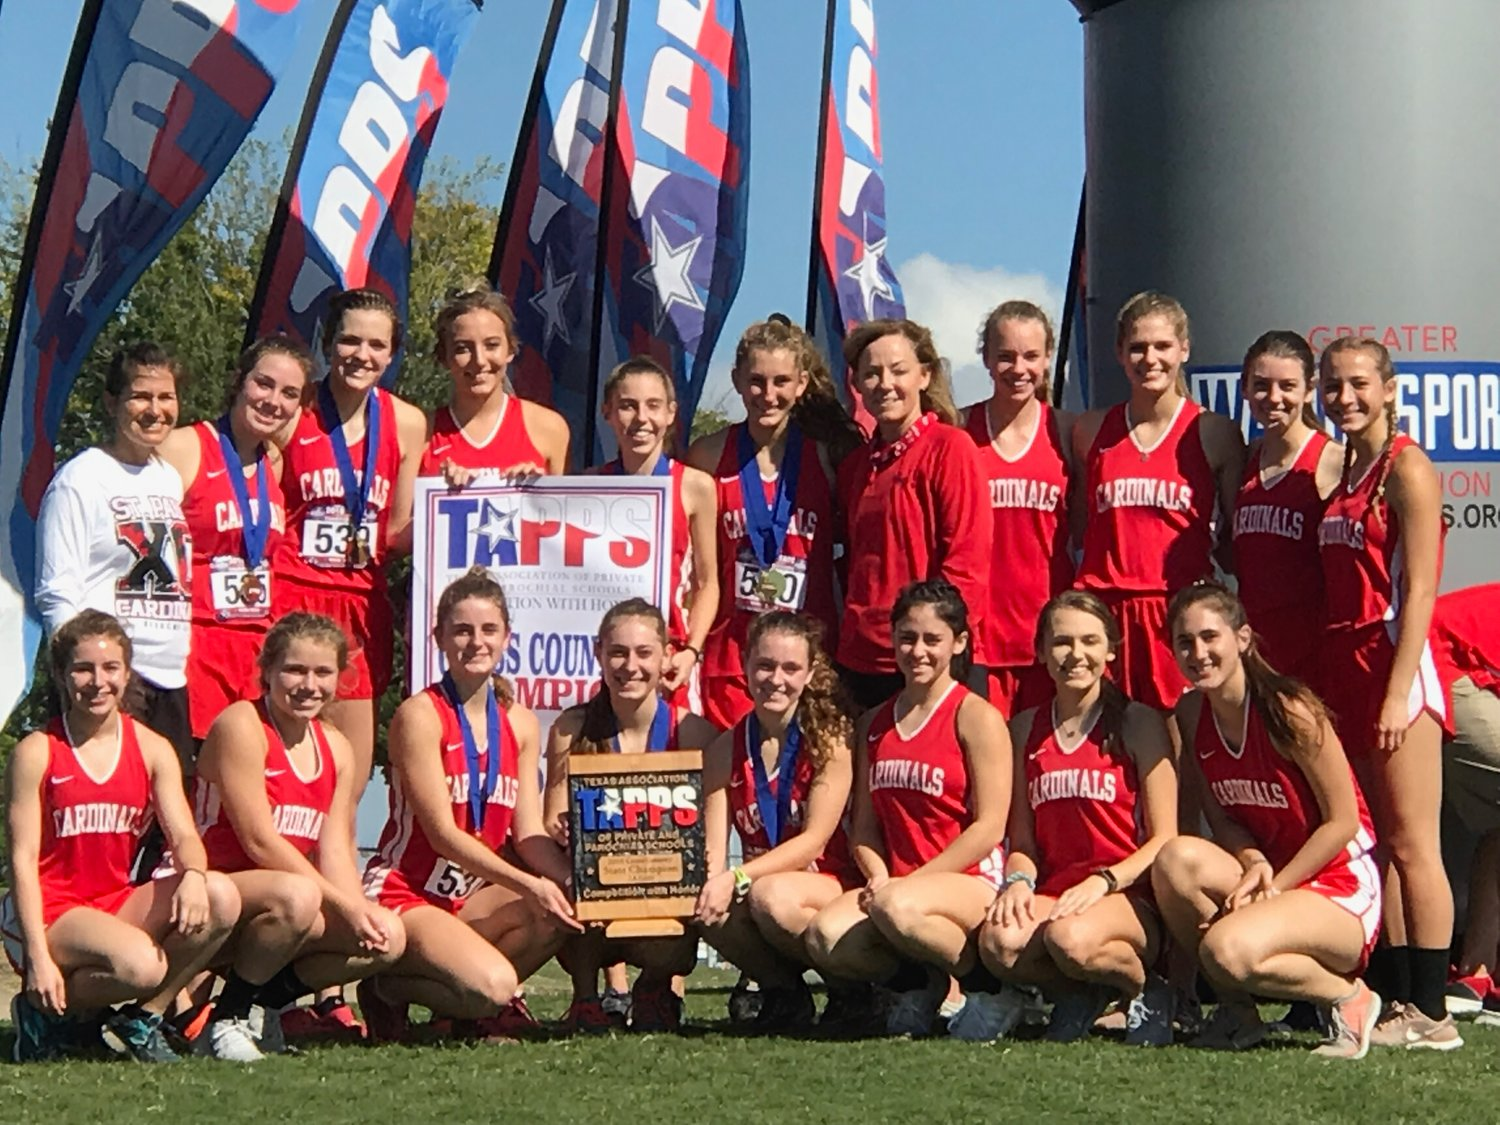 Pictured are the state champion Lady Cardinals. Kneeling down (from left) are Sarah Barecky, Taylor Wauson, Riley Johnson*, Hope Kapavik*, Bailey Blair*, Trinity Garza, Macy Grabarkievtz and Lauryn Kubenka. Top row (from left) are assistant Nicco Brown, Paige Brown*, Cameron Pesek*, Delynn Pesek, Juliana Davis*, Rebecca Wagner*, Head Coach Dana Beal, 